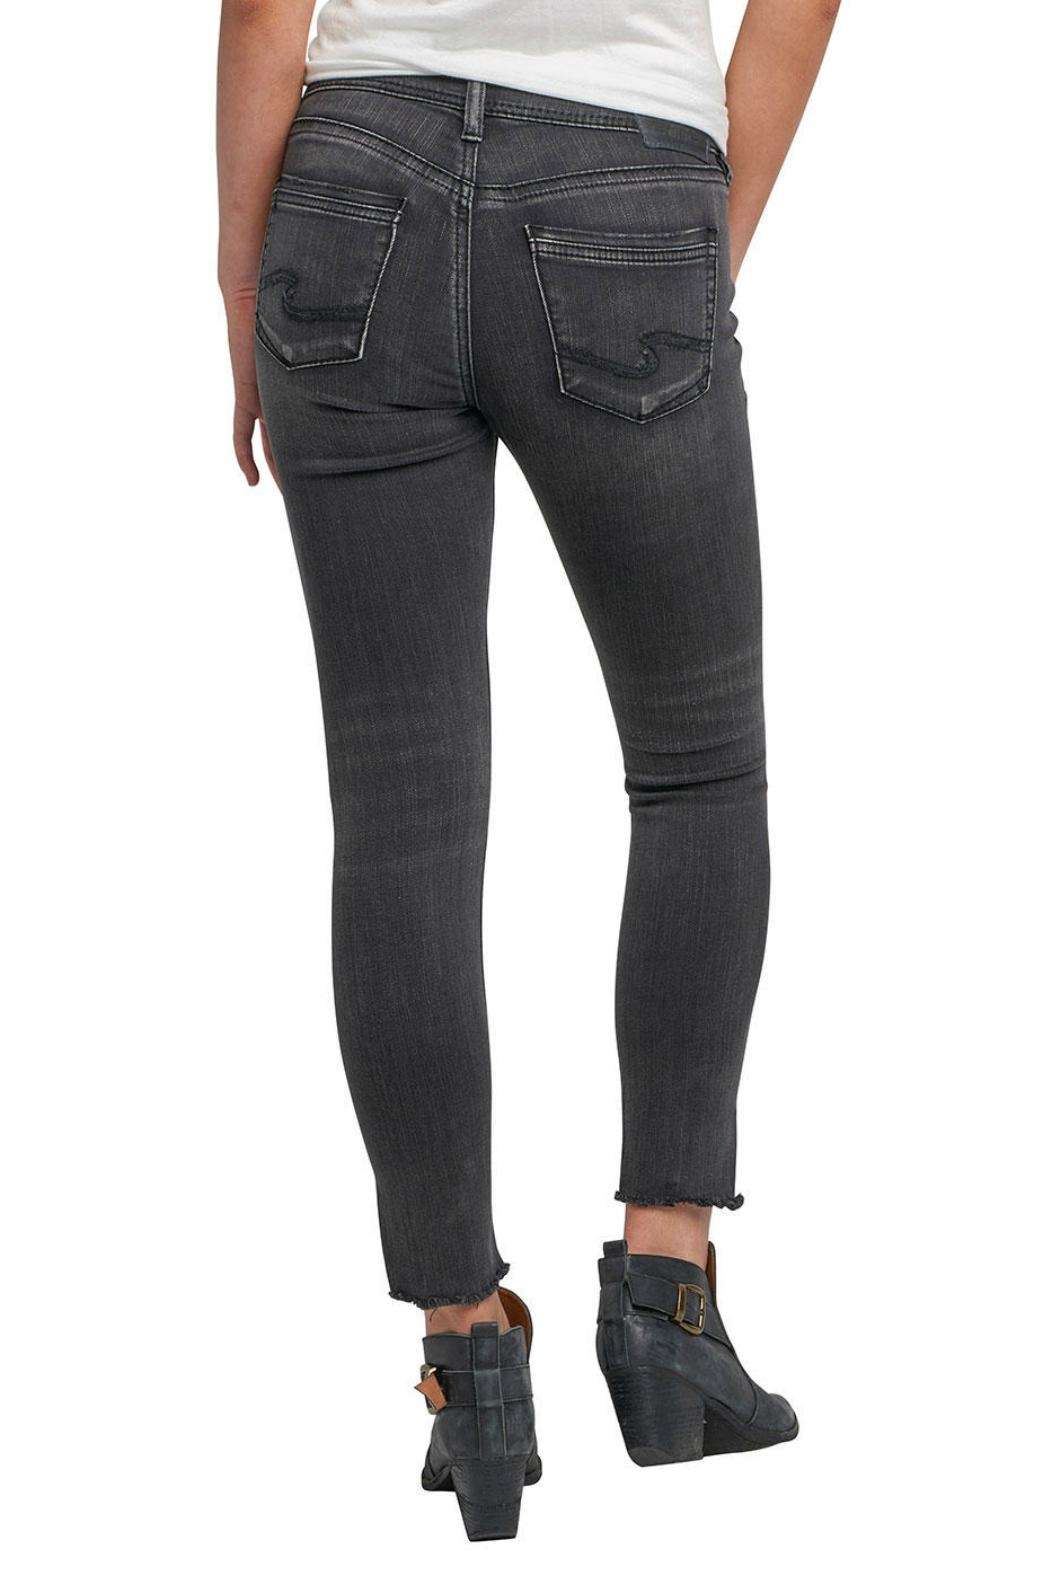 Silver Jeans Co. Avery Ankle Jeans - Front Full Image